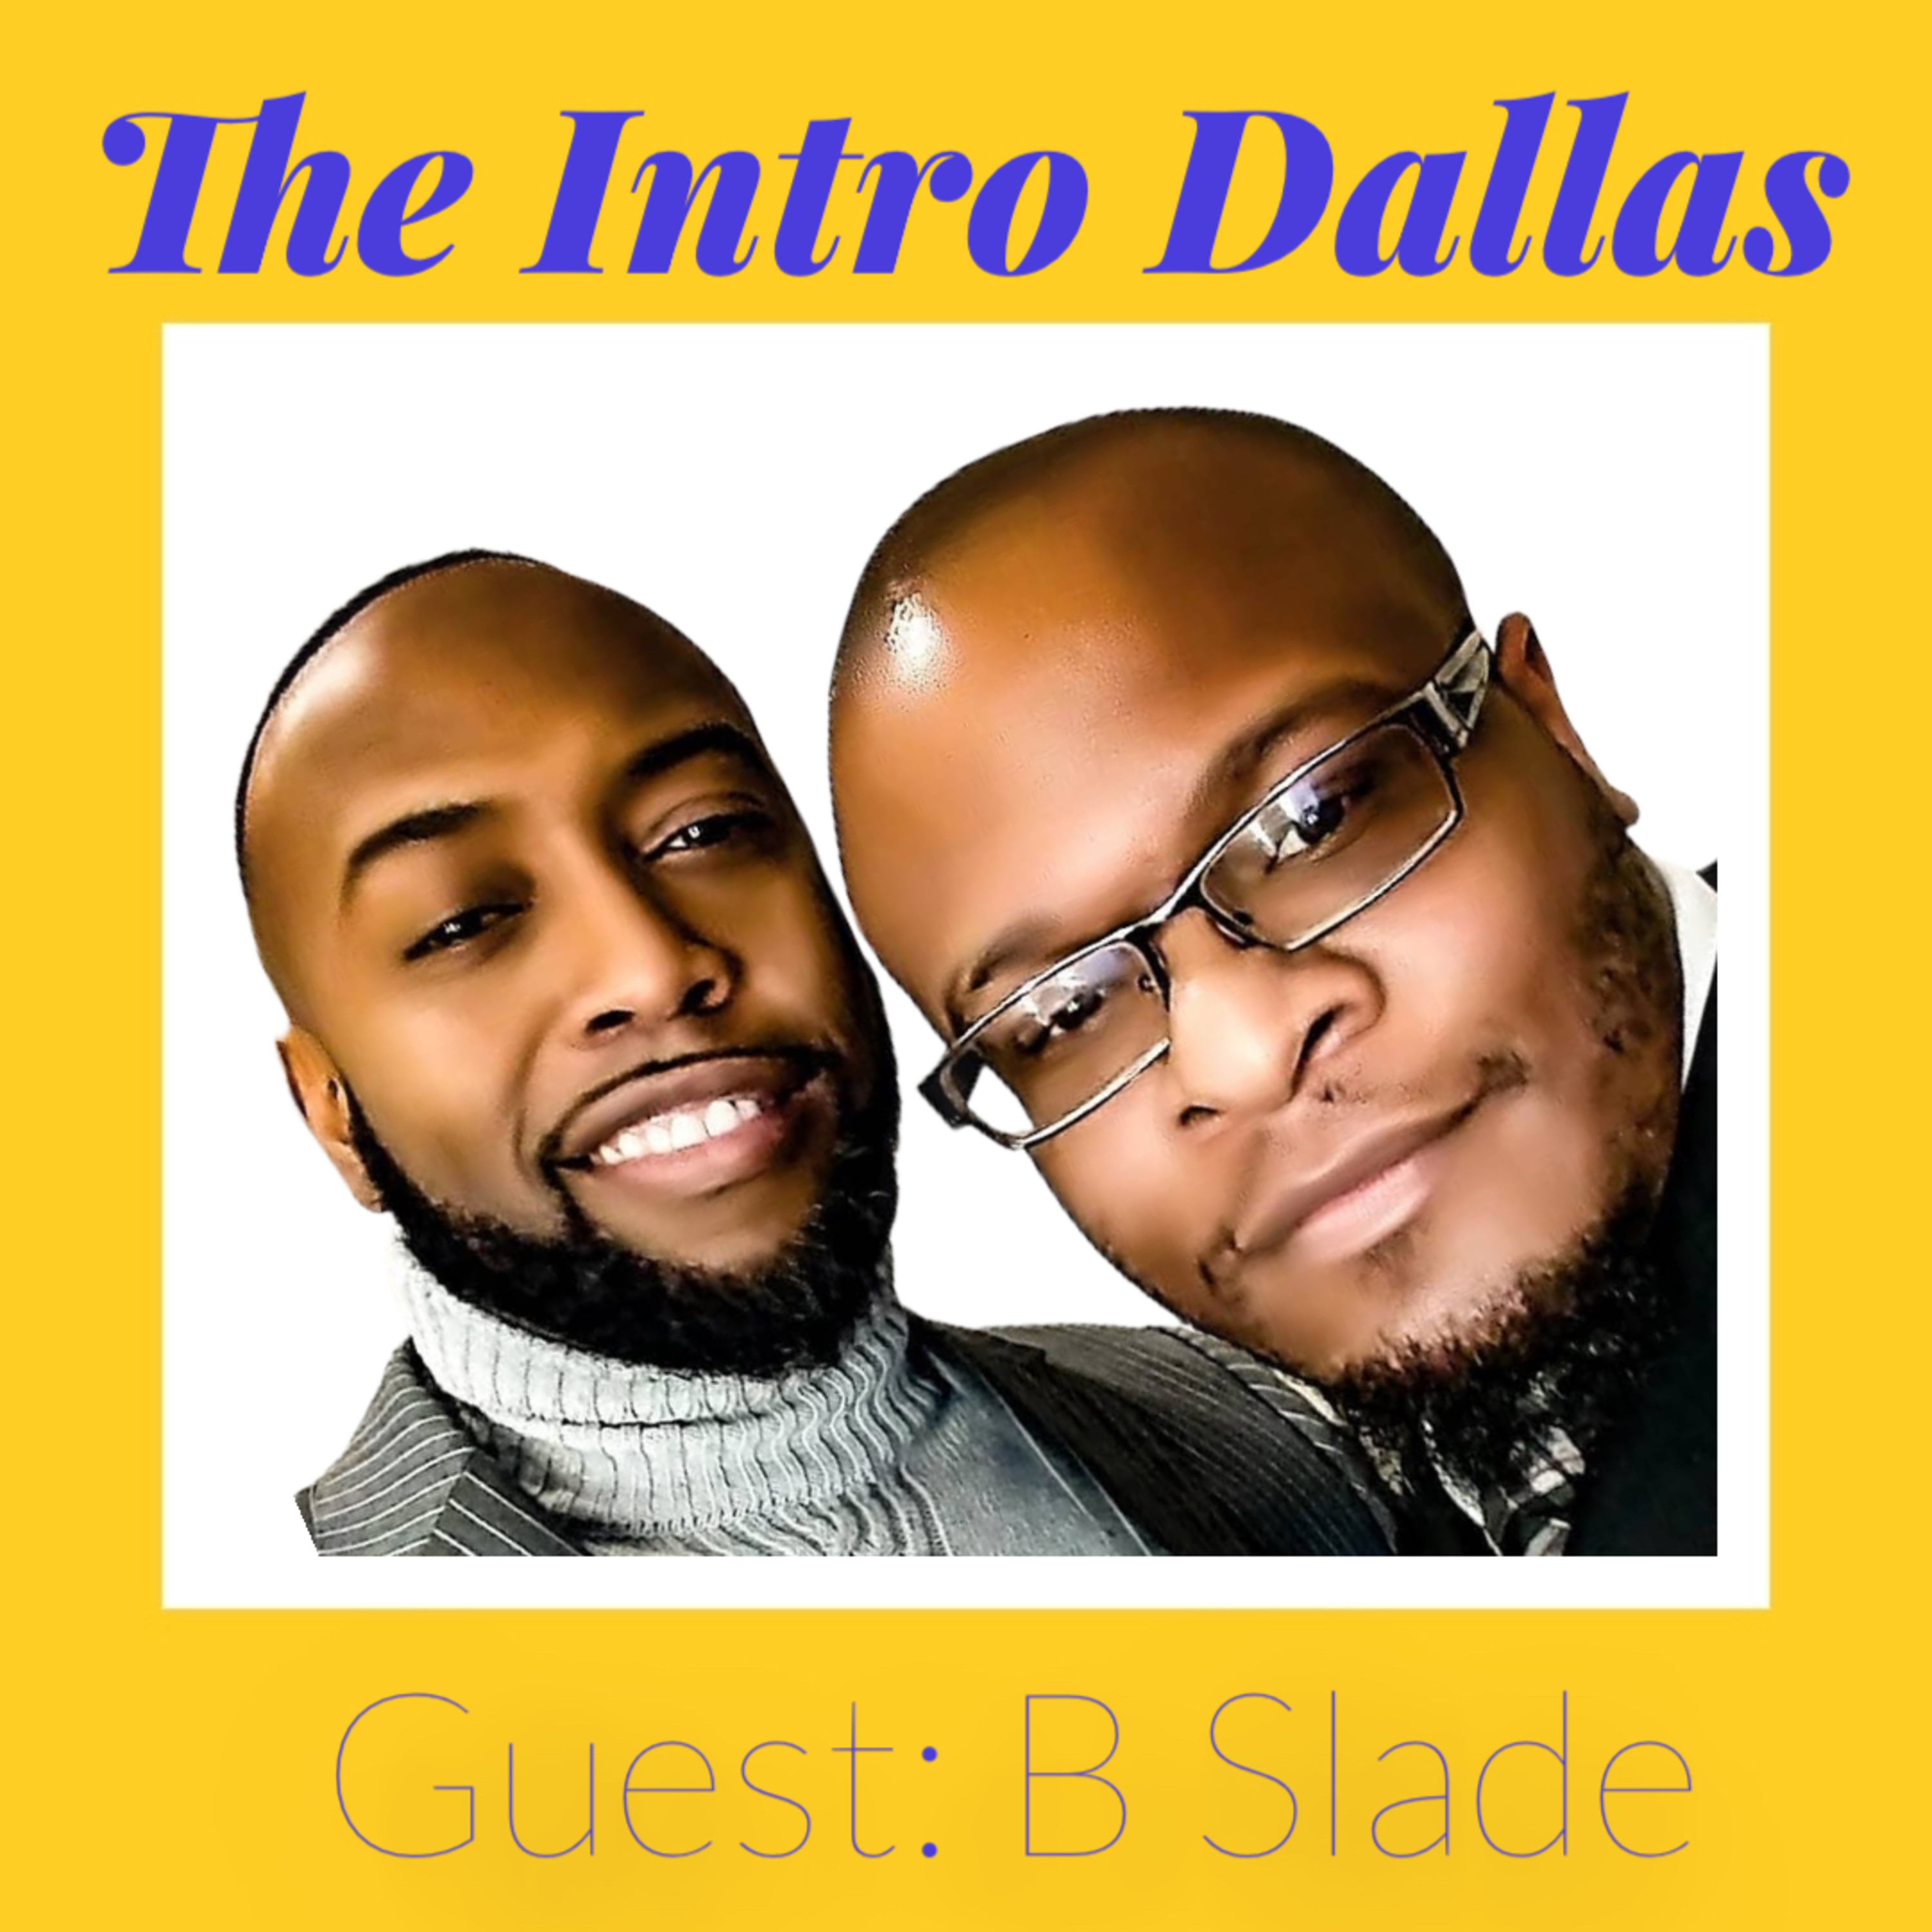 Show 3: Conversation with B. Slade